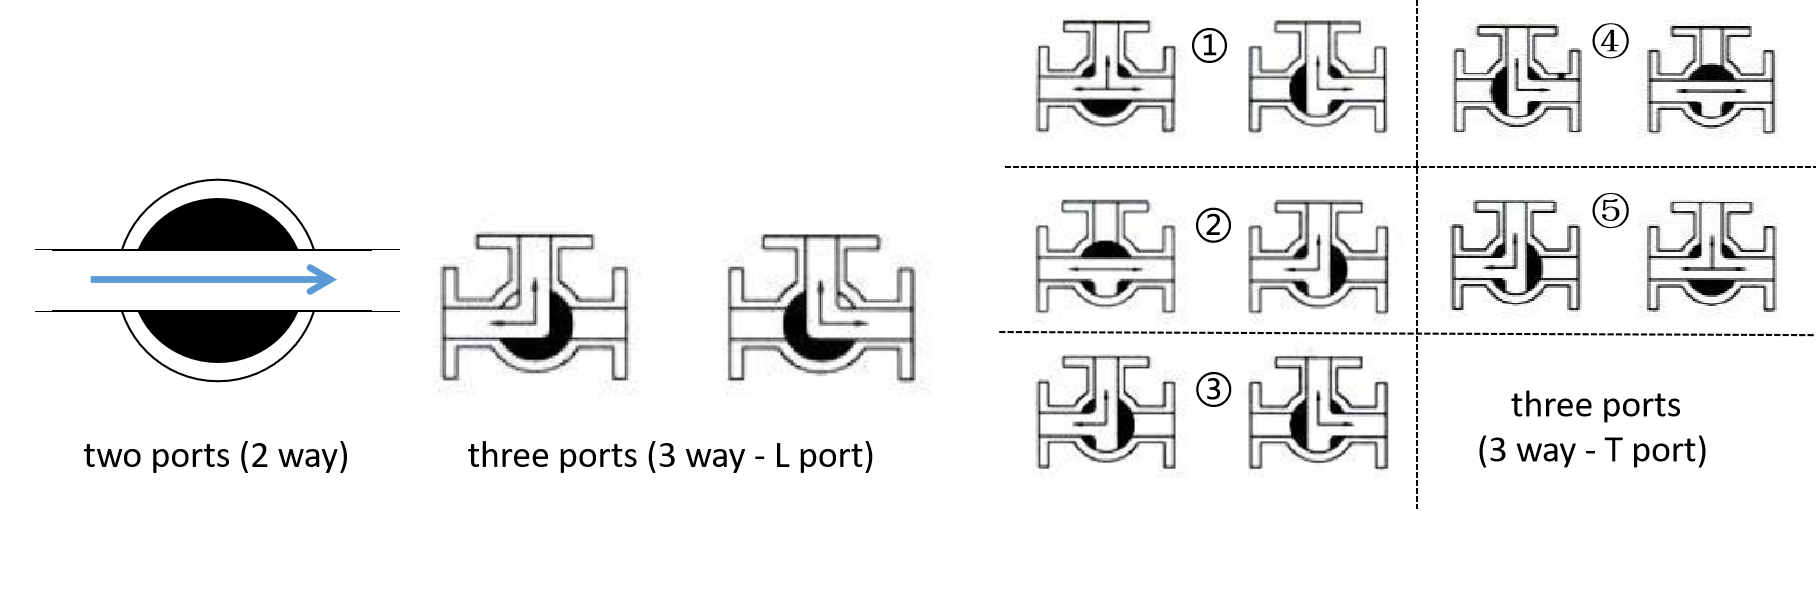 Diagram of different port fluids